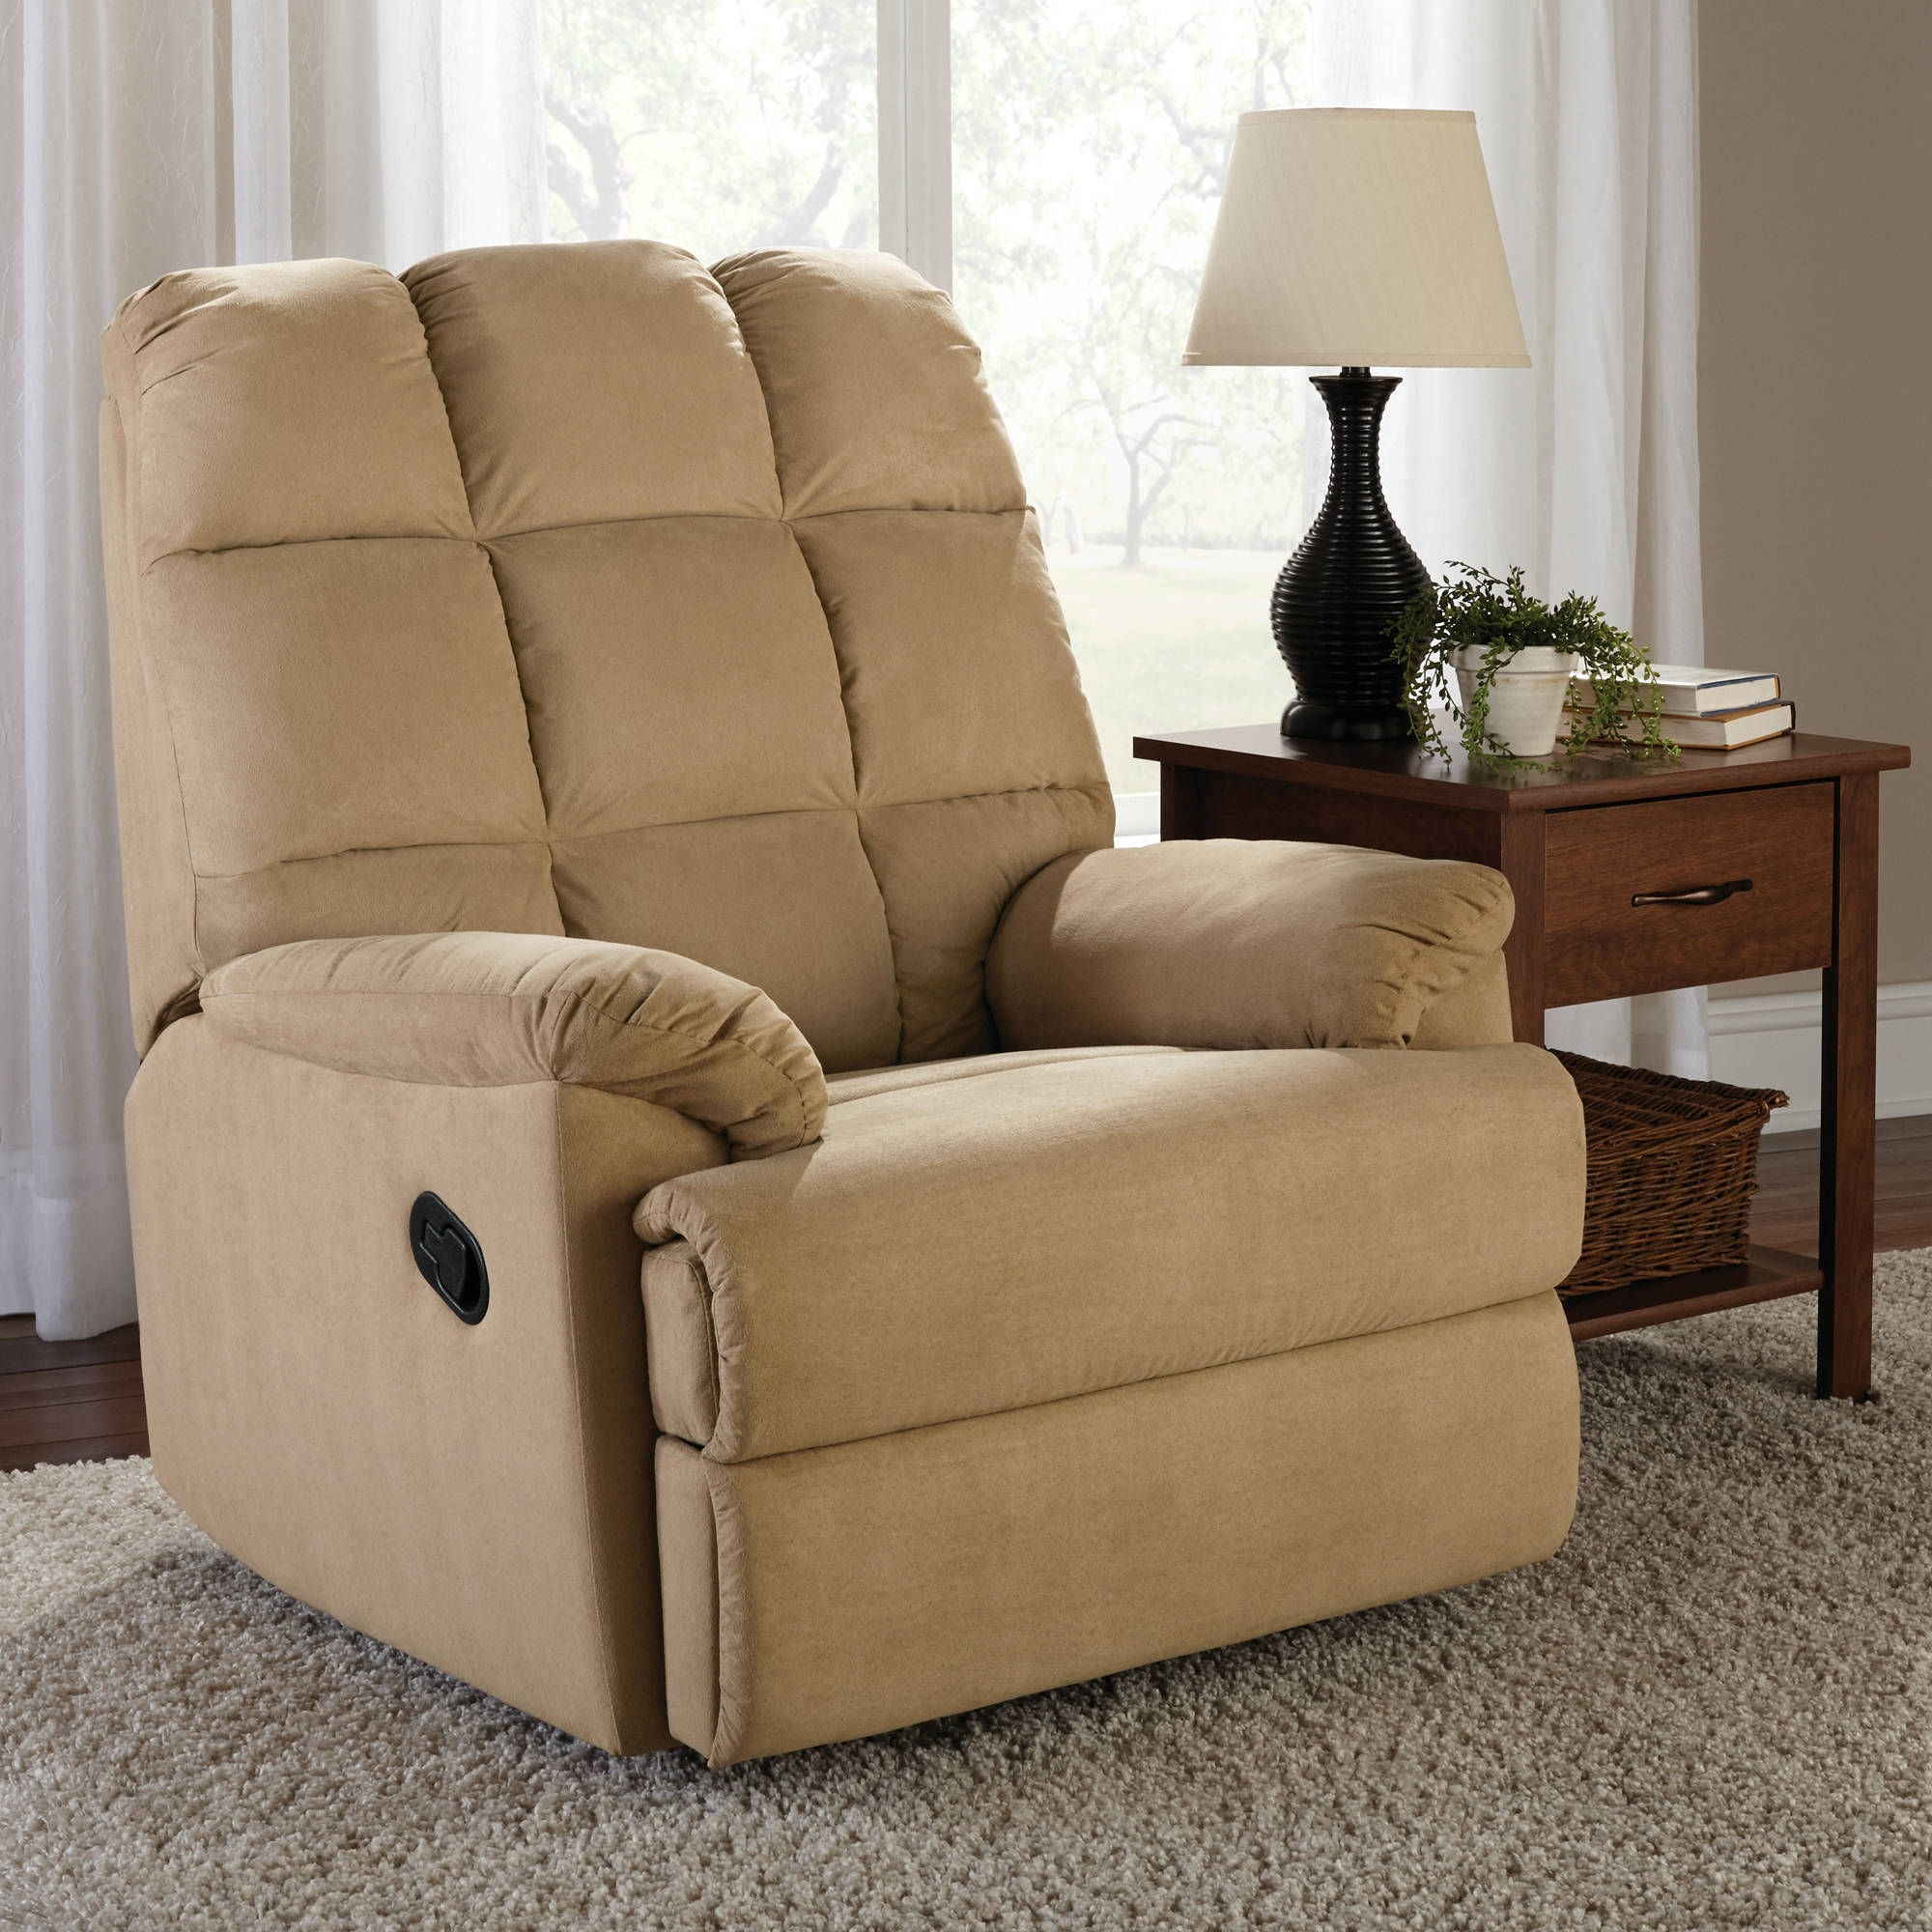 Inspiration about Mainstays Microsuede Rocker Recliner – Walmart Within Walmart Rocking Chairs (#13 of 15)